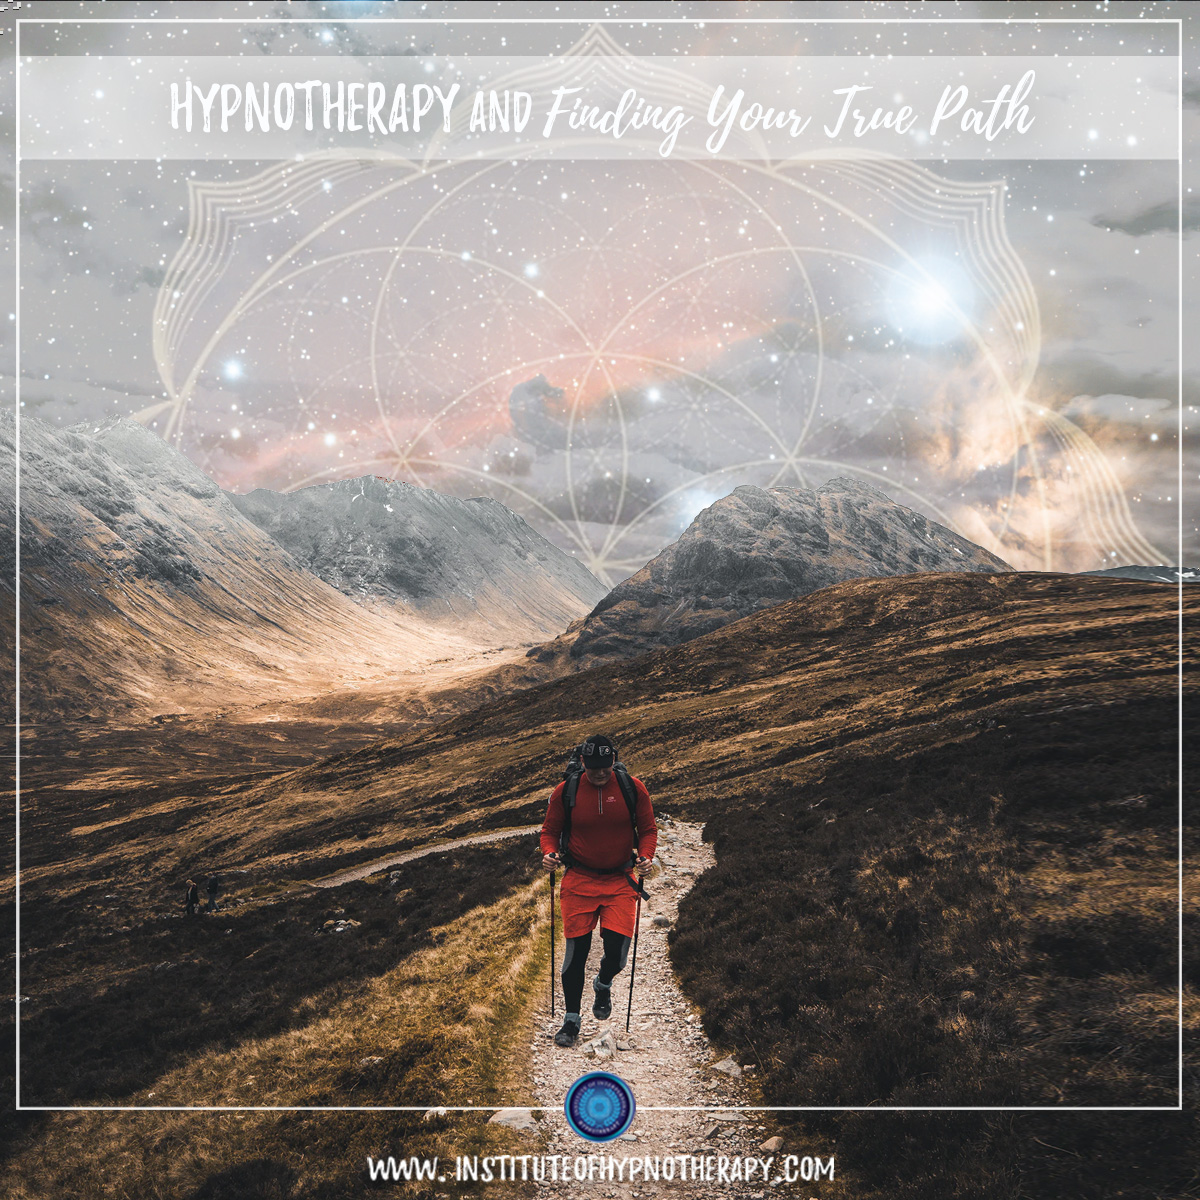 Hypnotherapy and Finding Your True Path